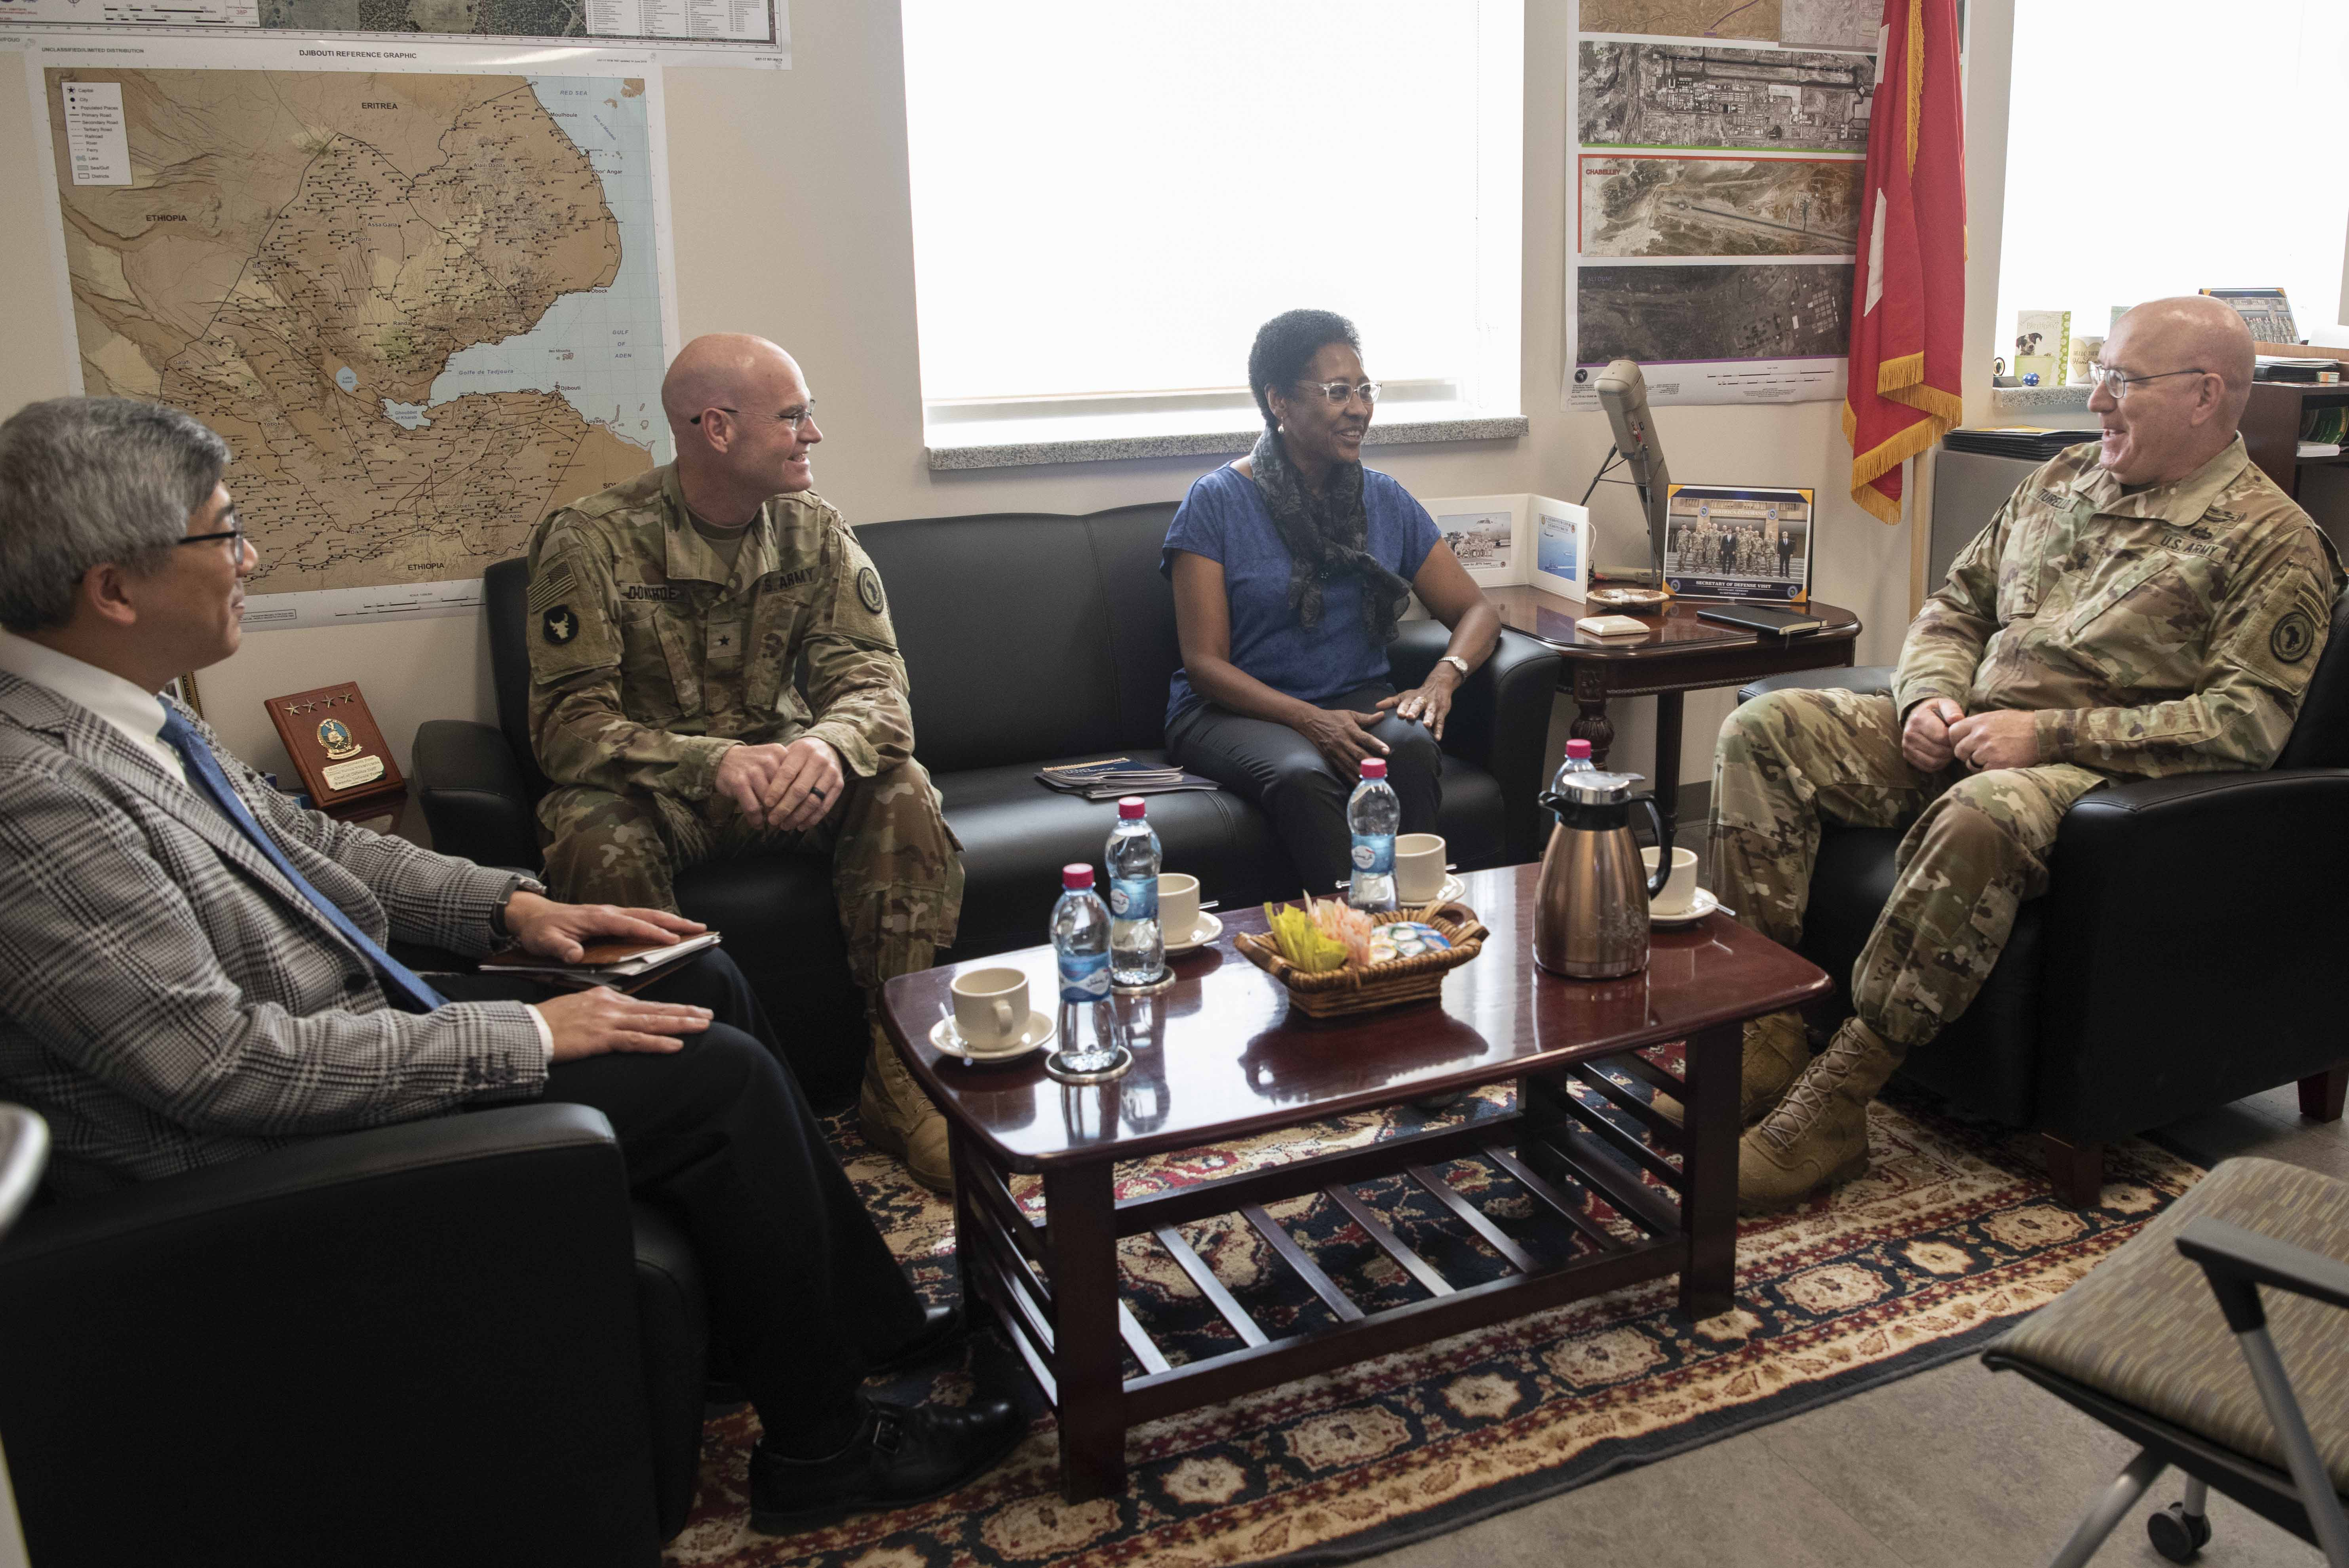 U.S. Army Maj. Gen. Michael D. Turello, commanding general of Combined Joint Task Force-Horn of Africa (CJTF-HOA), right, meets with Ambassador Eunice S. Reddick, Chargé d'affaires of the U.S. Embassy to Burundi, at Camp Lemonnier, Djibouti, Jan. 31, 2020. Reddick visited to learn more about the CJTF-HOA mission. (U.S. Air Force photo by Tech. Sgt. Ashley Nicole Taylor)